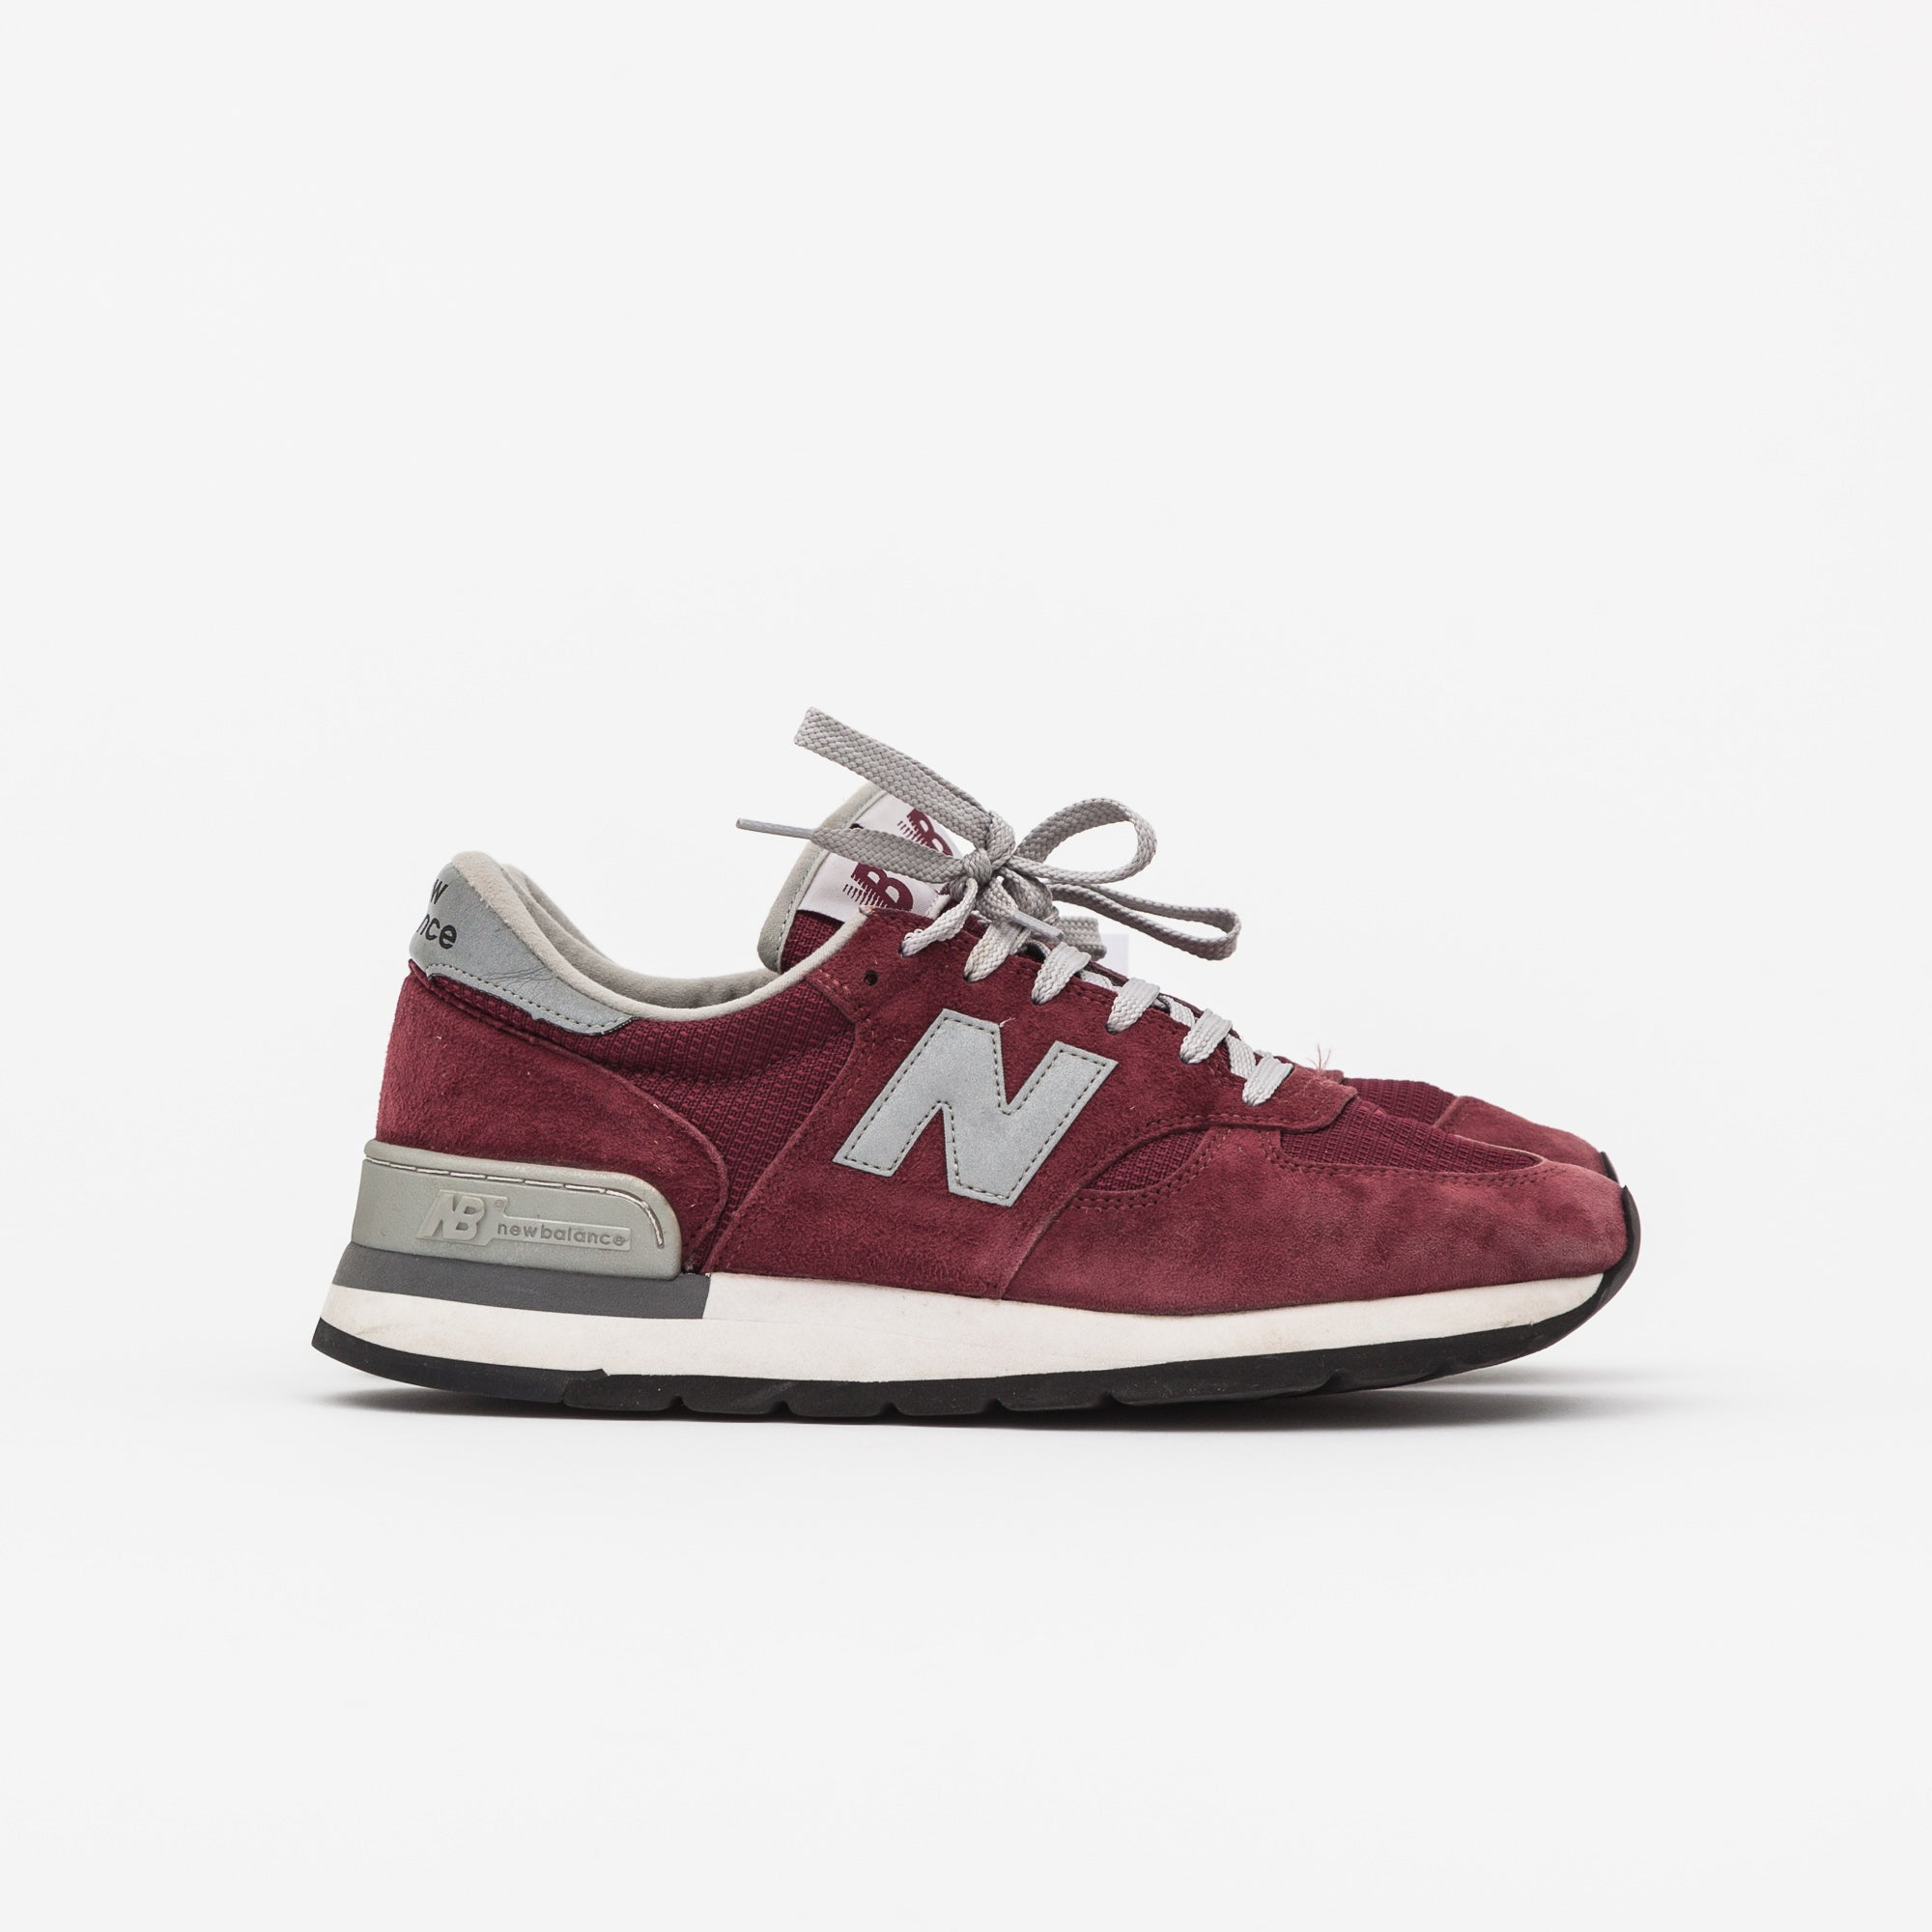 New Balance x Mr.Porter Sneakers (Made in USA)